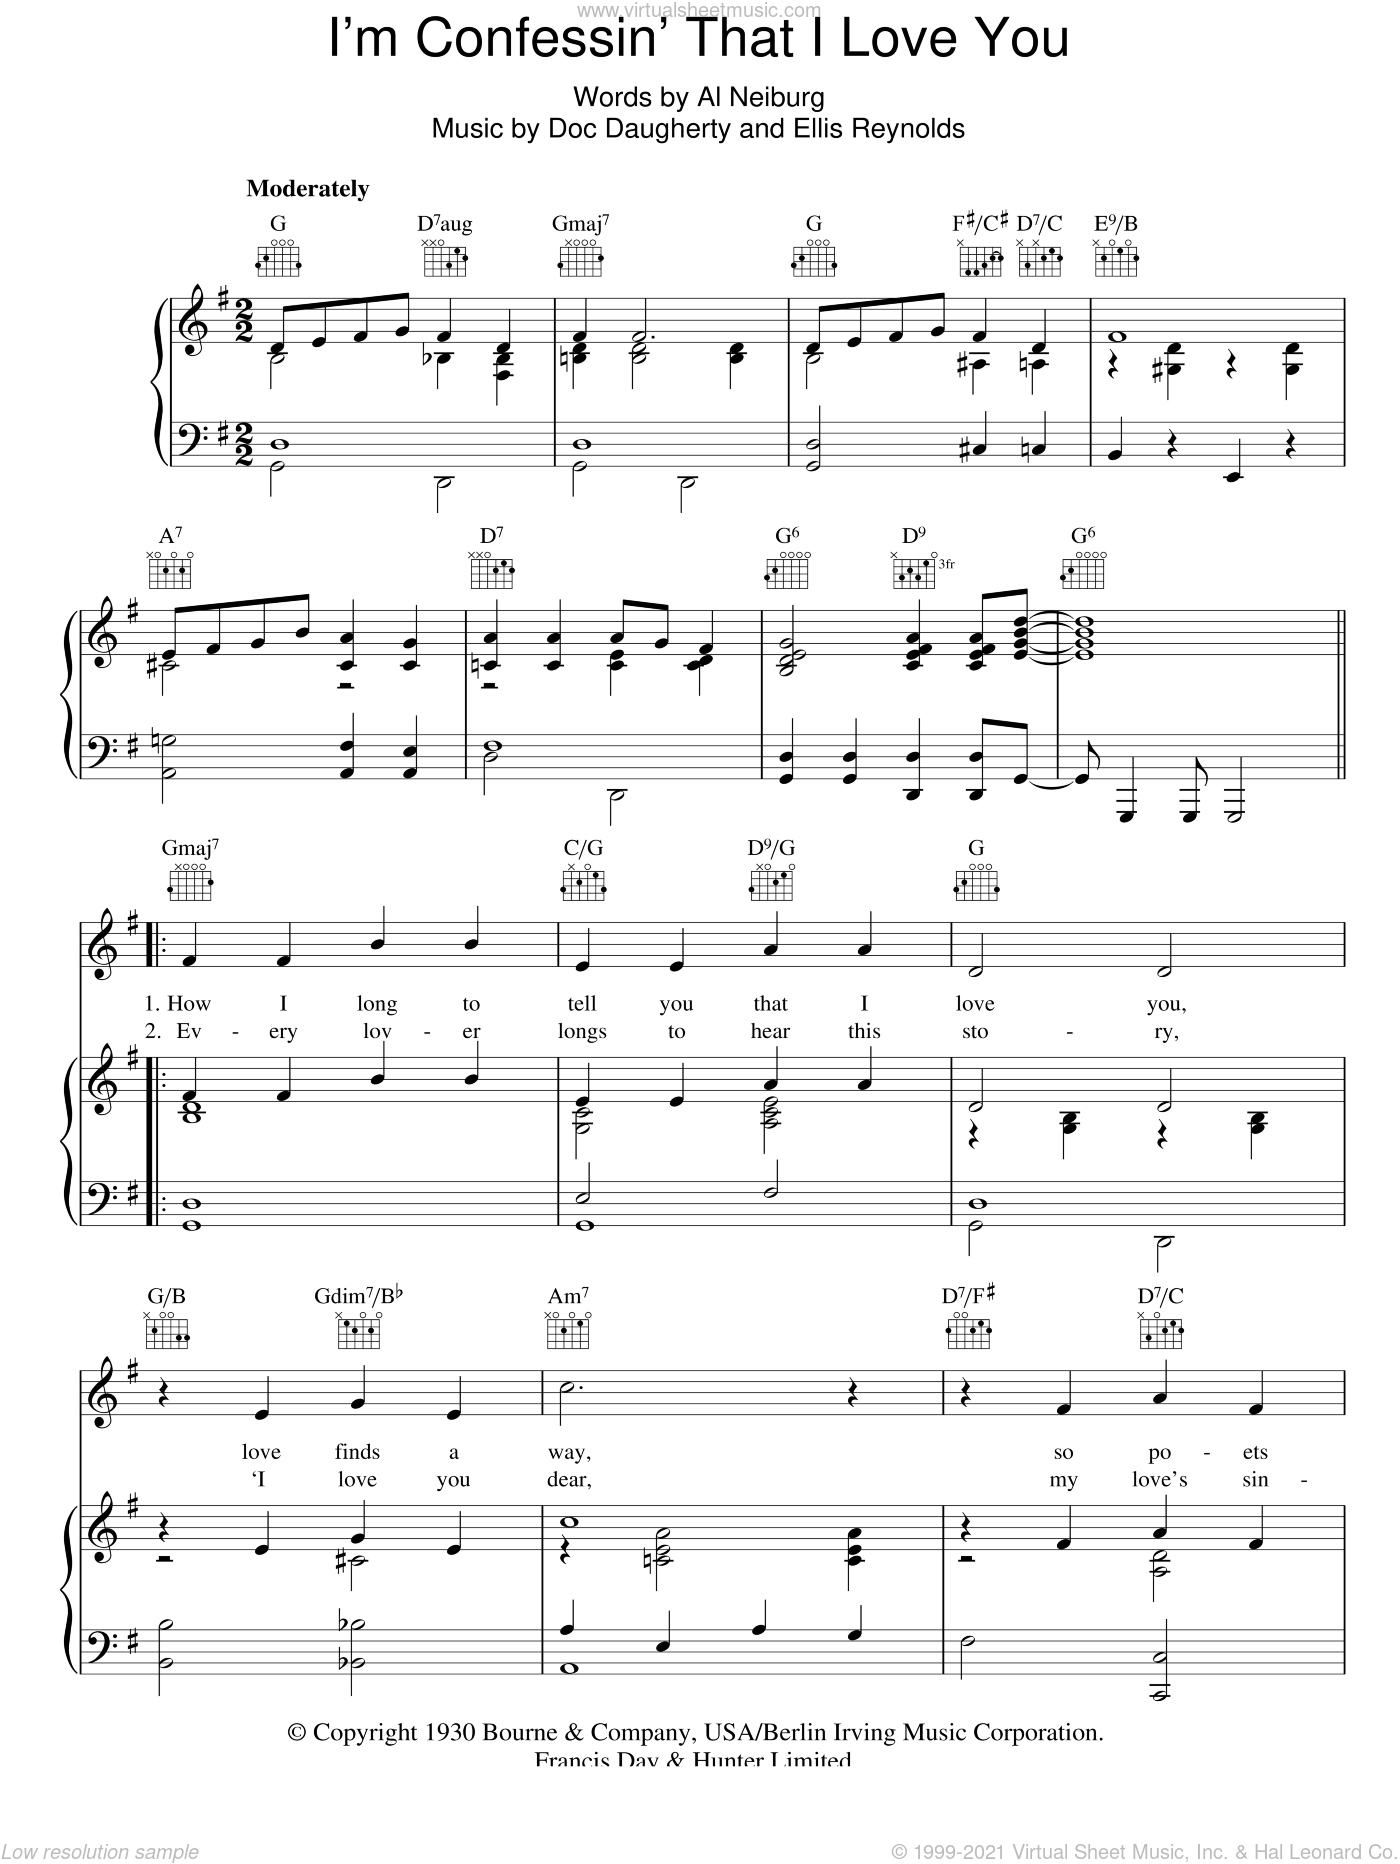 I'm Confessin' That I Love You sheet music for voice, piano or guitar by Ellis Reynolds